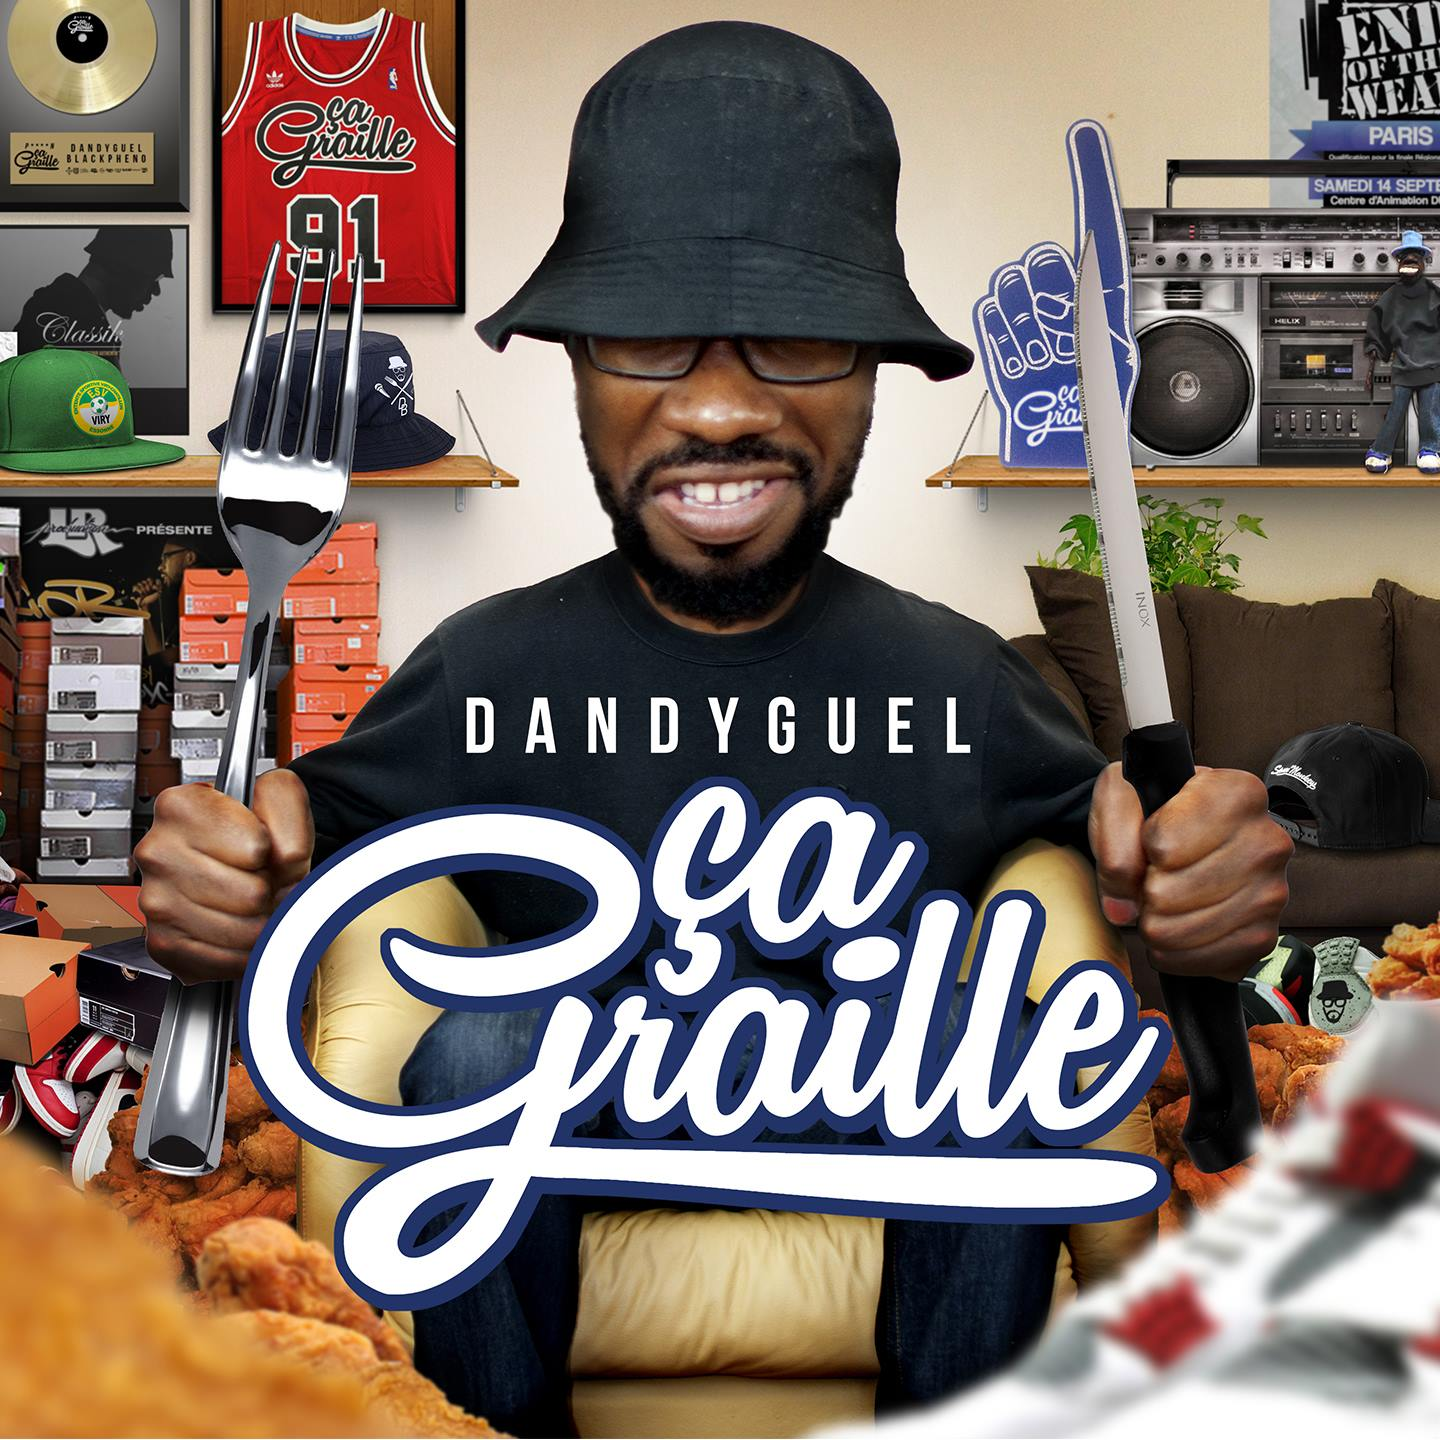 Dandyguel - Ca Graille